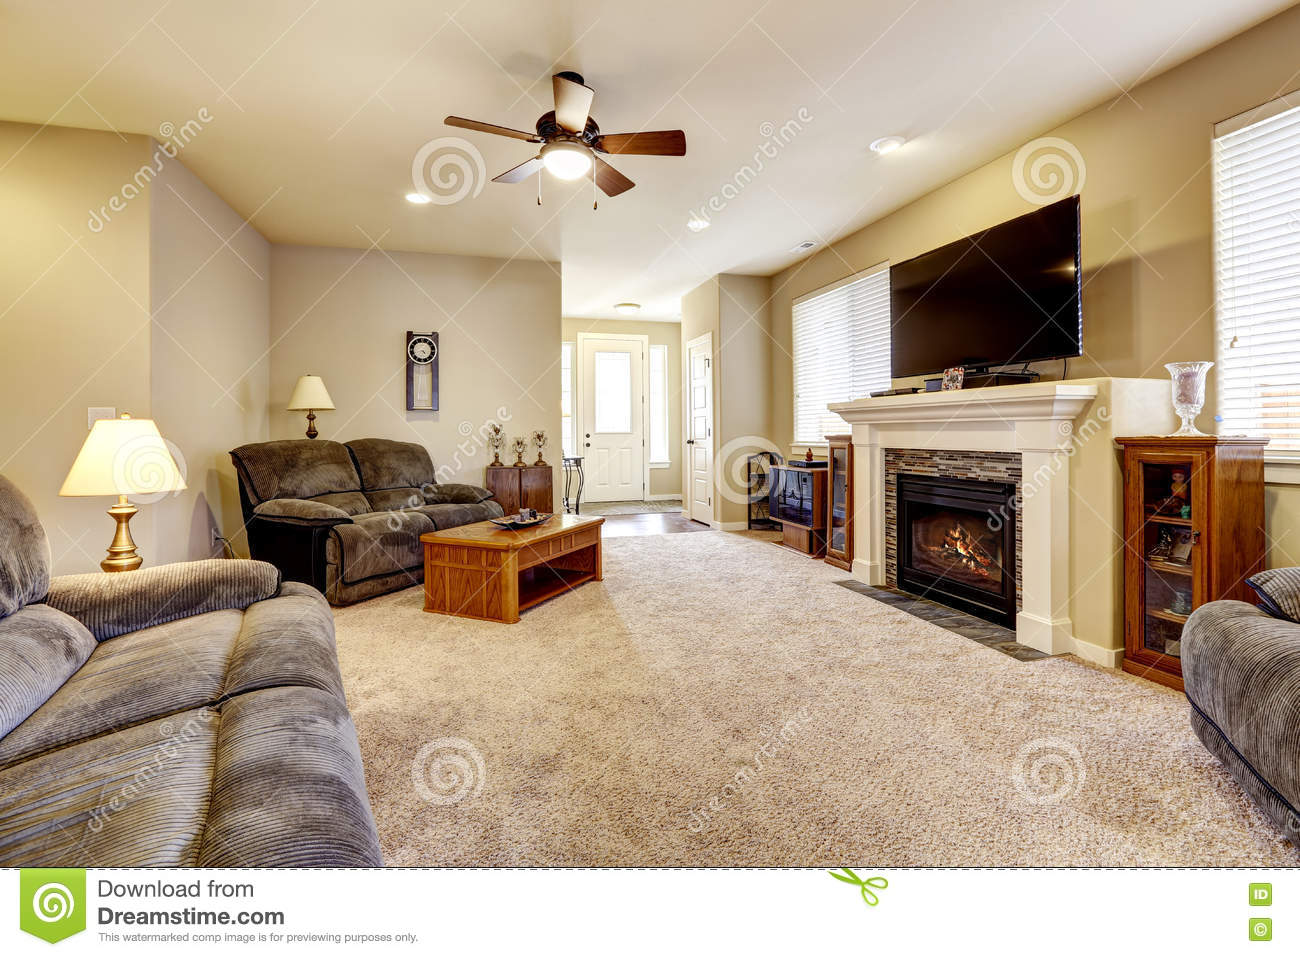 American style living room - Living Room Interior In Classic American Style With Beige Walls Gray Sofa Set And Fireplace